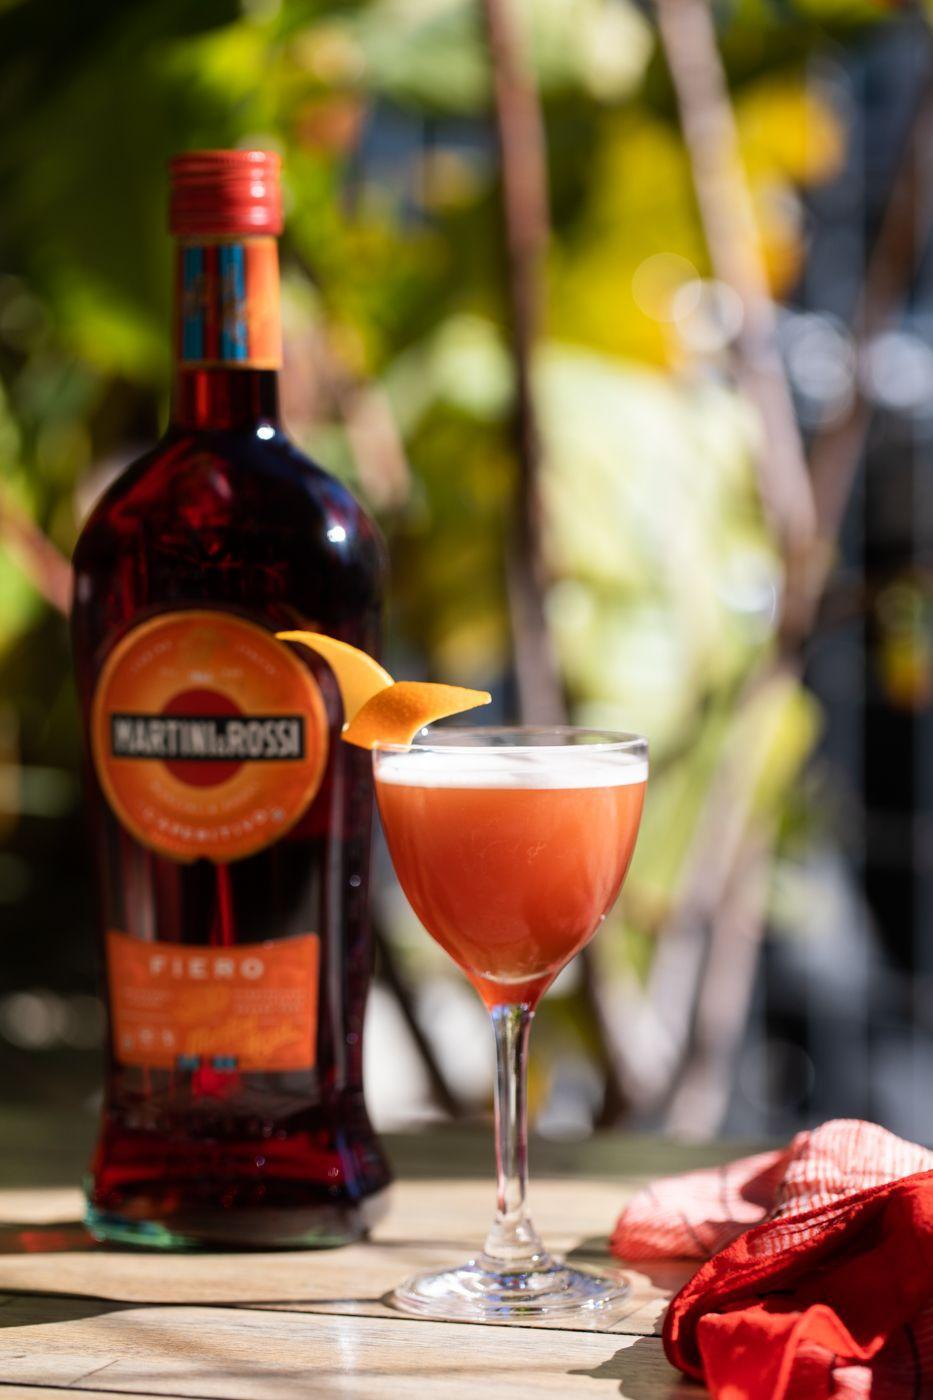 <p>This dramatic cocktail combines a few of our favorite ingredients: Fiero, gin, and cold brew coffee. What's not to love? </p><p><strong>Ingredients:</strong></p><p>¾ ounce Martini & Rossi Fiero</p><p>¾ ounce Bombay Sapphire gin</p><p>¼ ounce Martini & Rossi Bitter liqueur</p><p>¾ ounce Cold brew coffee</p><p>Orange peel, for garnish</p><p><strong>Directions:</strong></p><p>Stir together ingredients, pour into a coupe glass, and garnish with an orange slice.<br></p>